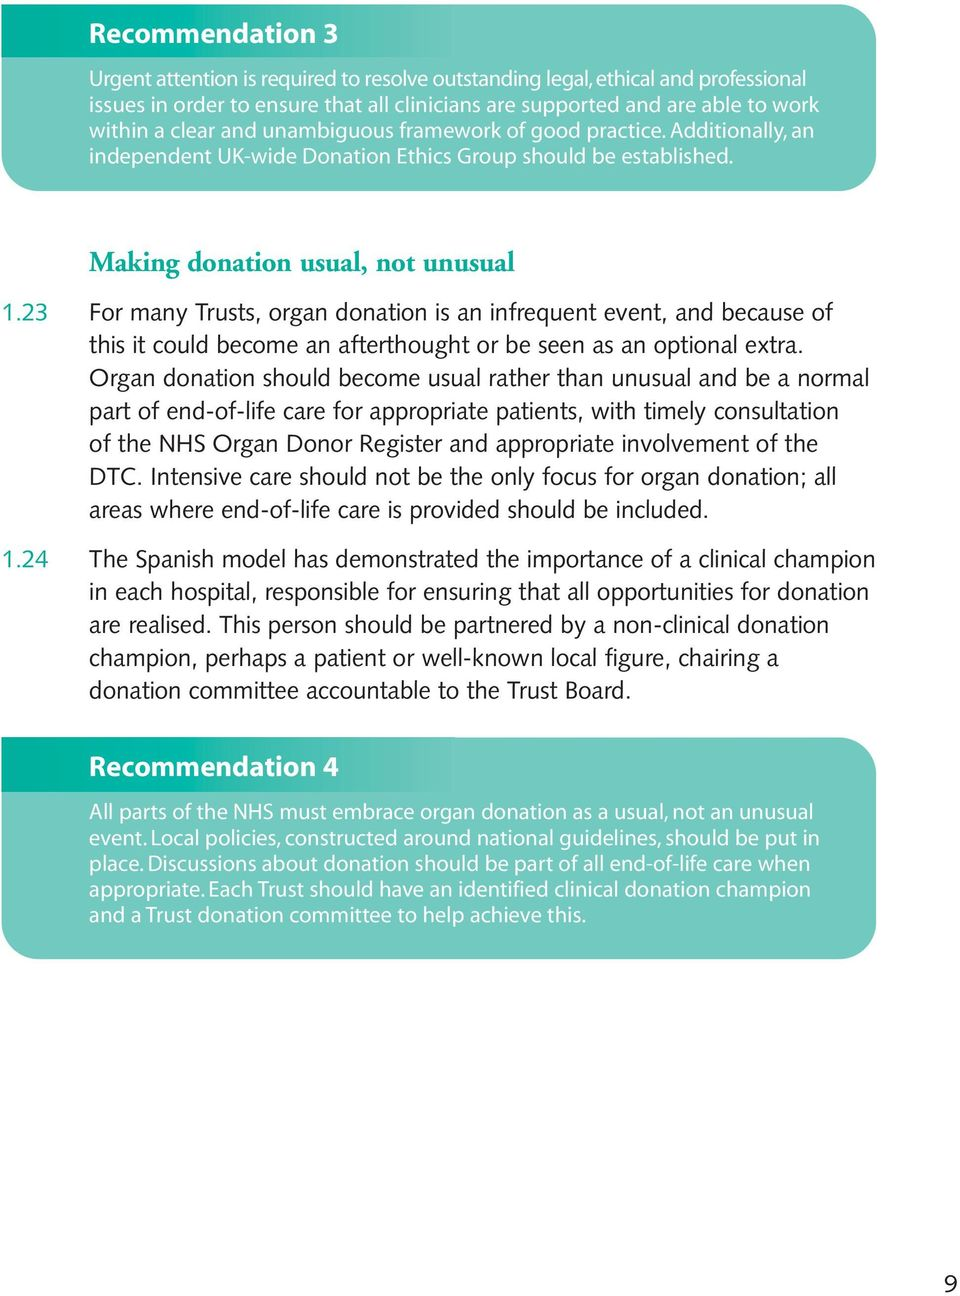 23 For many Trusts, organ donation is an infrequent event, and because of this it could become an afterthought or be seen as an optional extra.